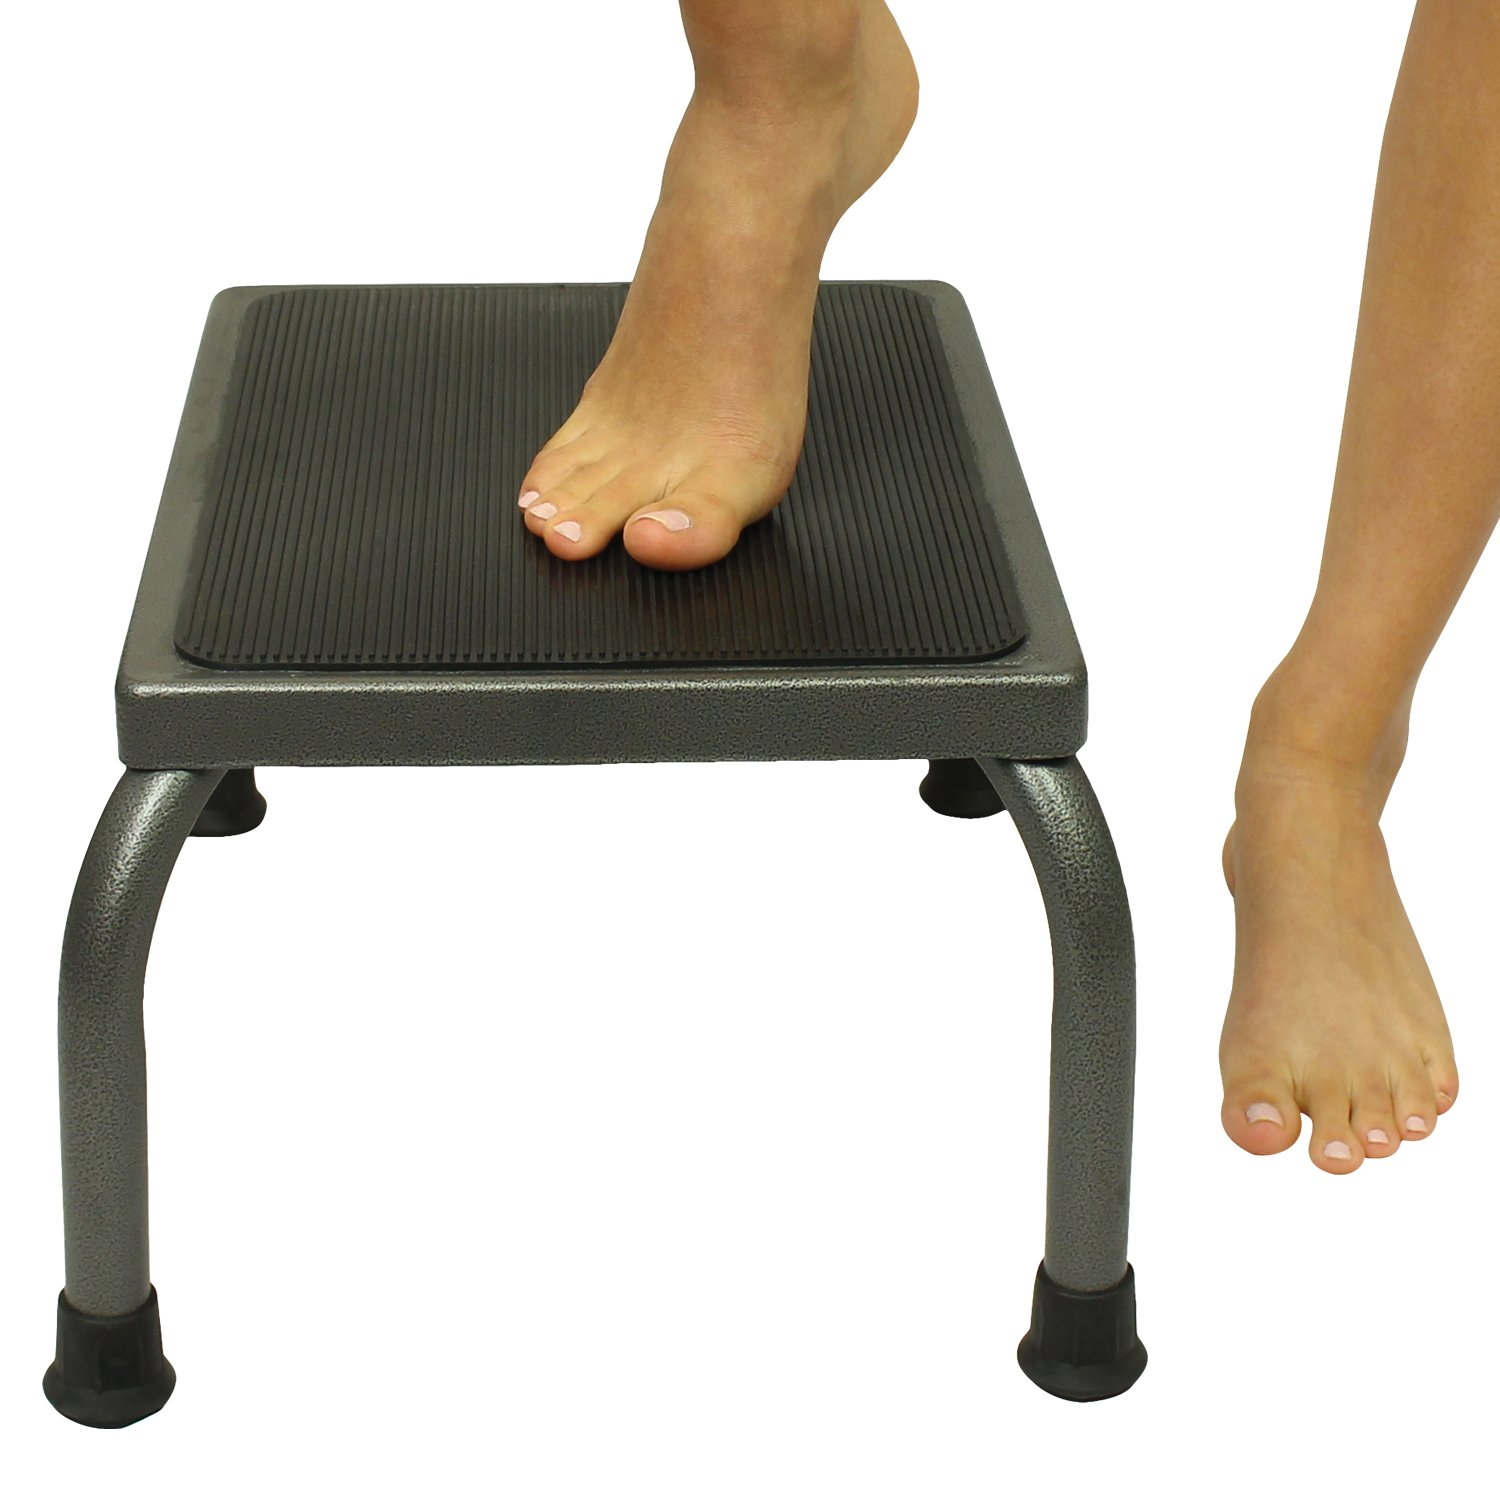 Kitchen Step Stool by Vive Metal Foot Stool for Bathroom